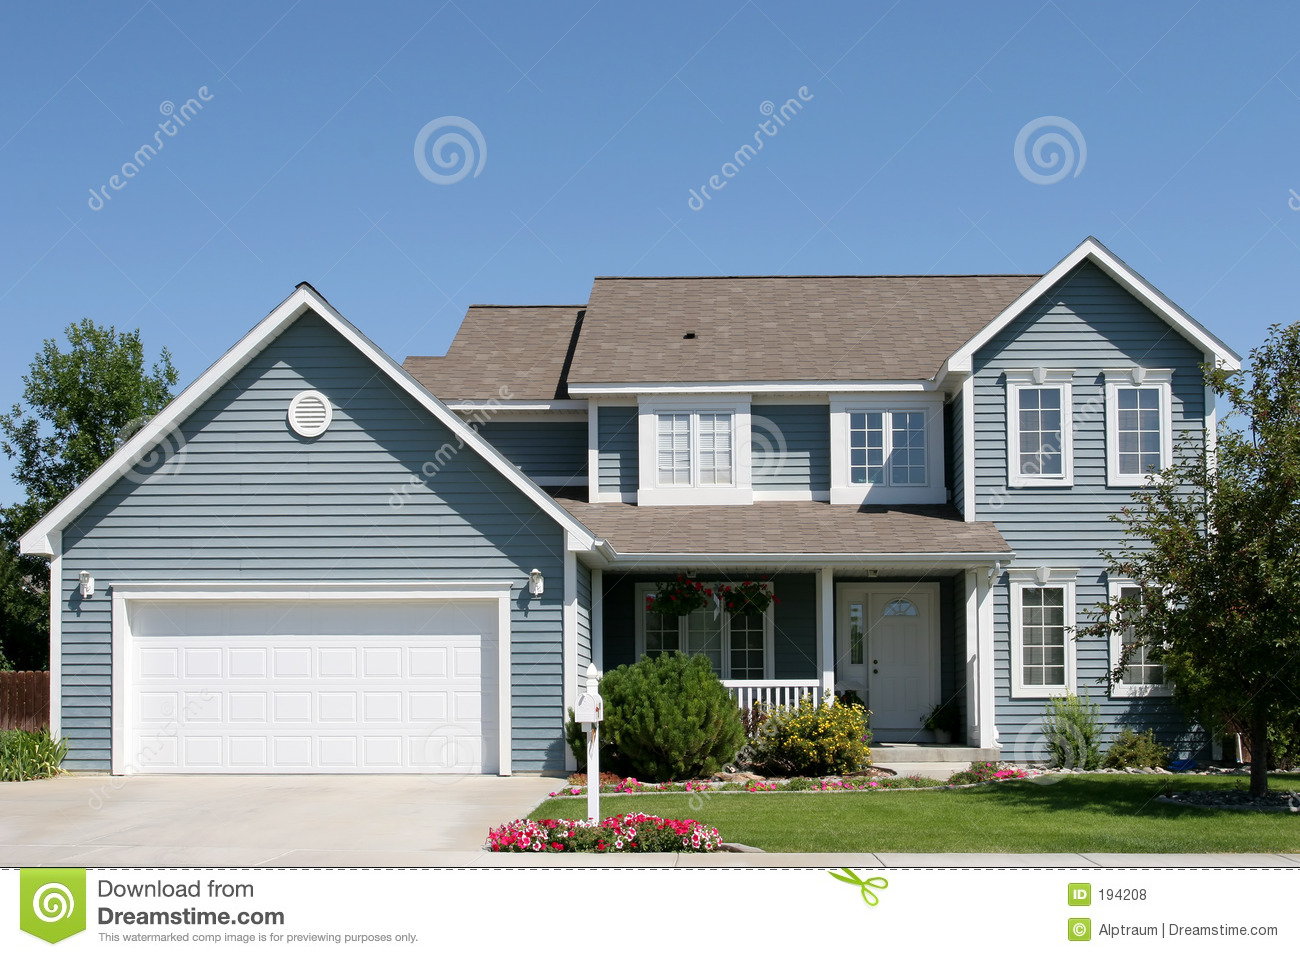 New american home royalty free stock photos image 194208 for New american home